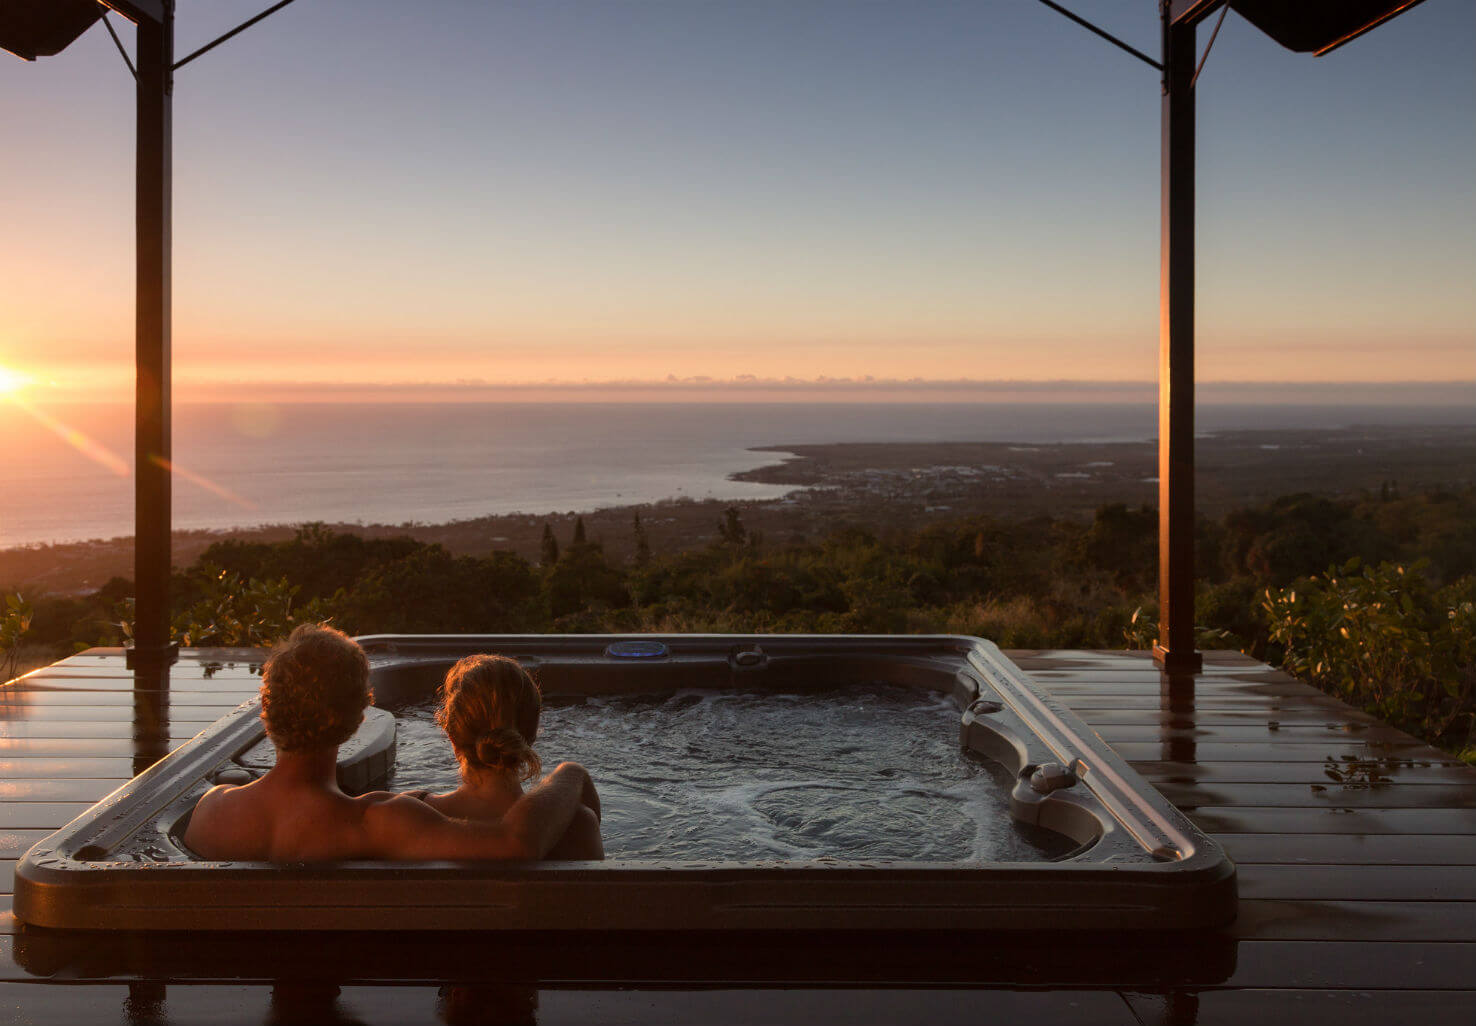 Couple relaxing in hot tub overlook